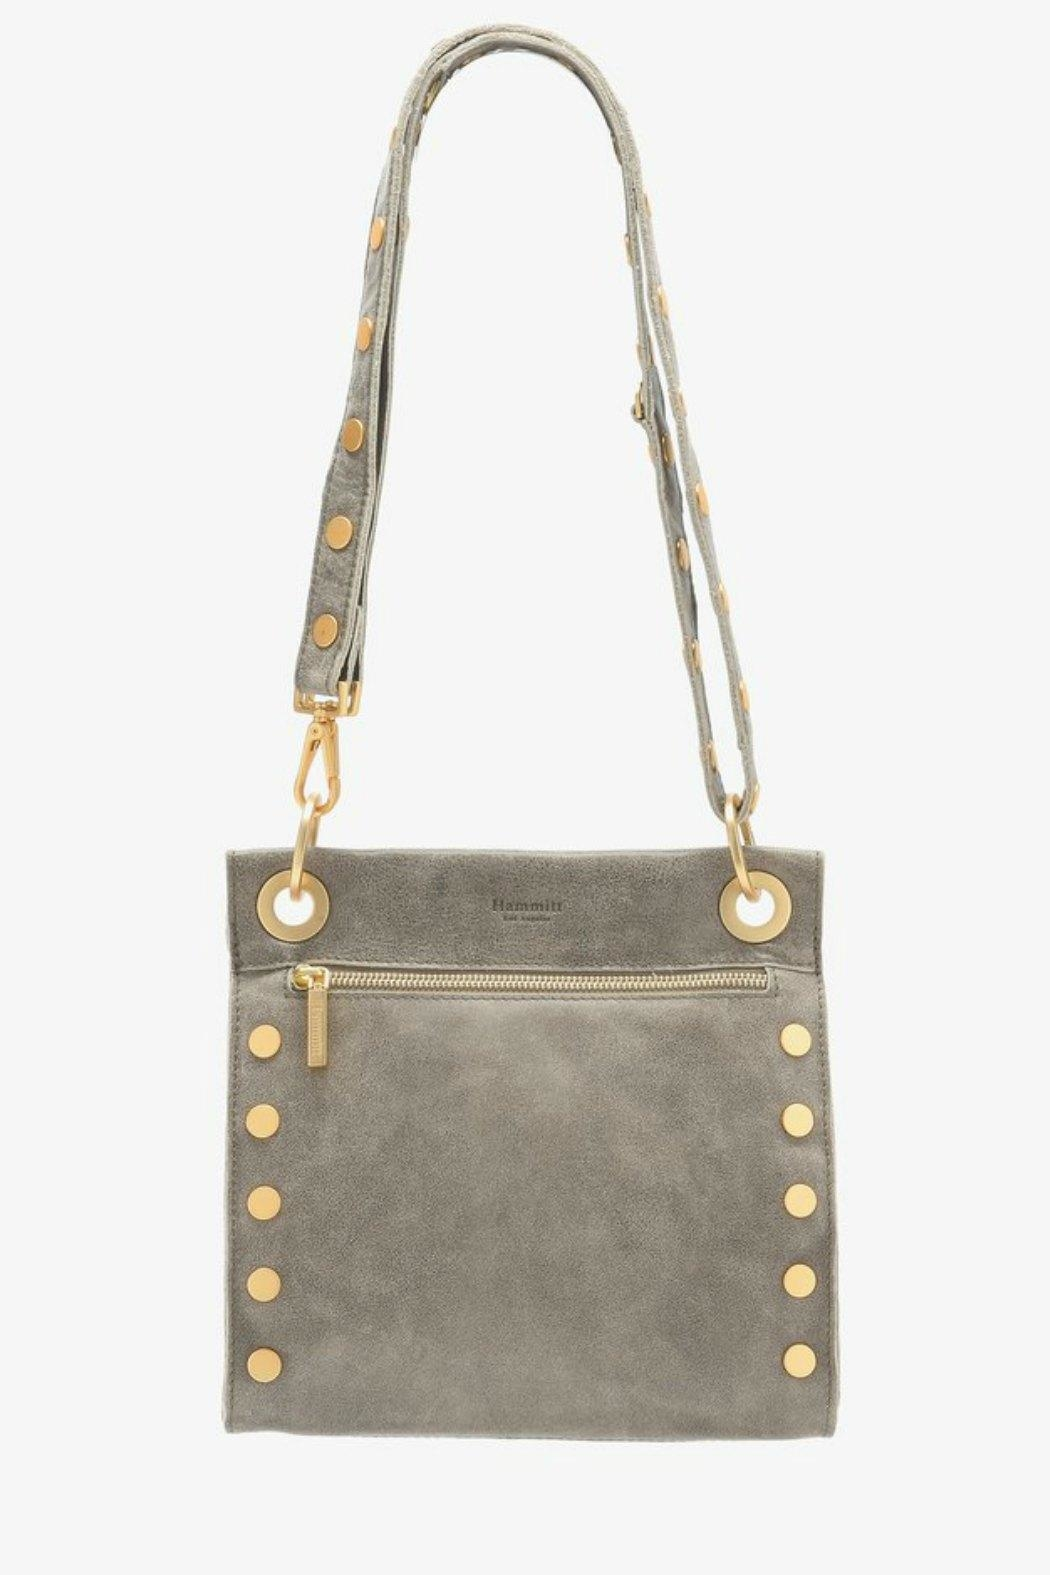 Hammitt Tony Medium Crossbody - Main Image